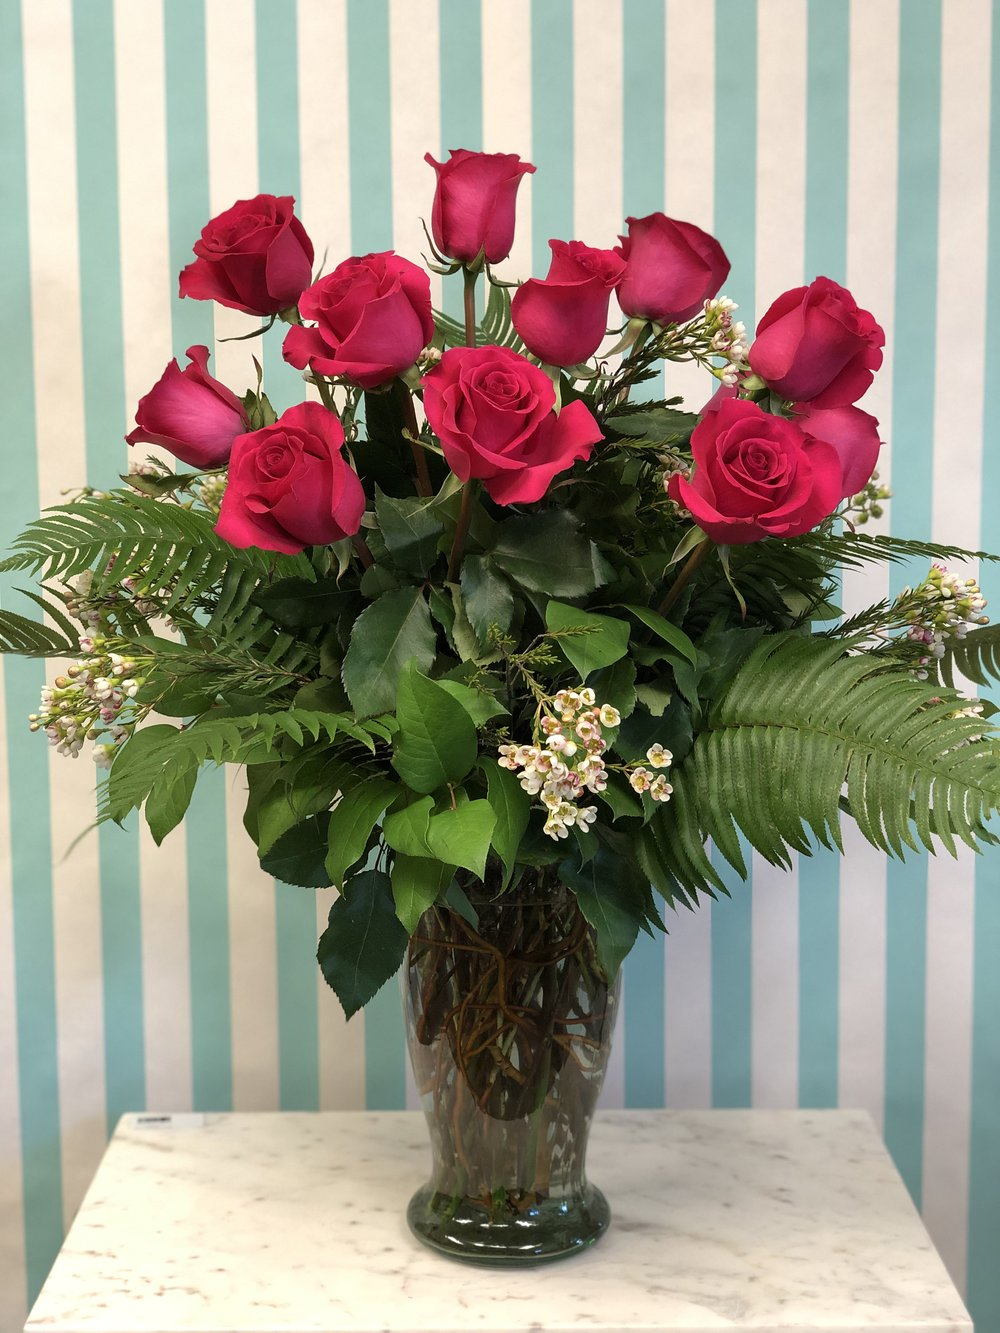 1 Dozen Roses in Vase- $120   Roses, wax flower, flat fern, and lemon leaf in a 14in vase. Colors may vary unless specified.